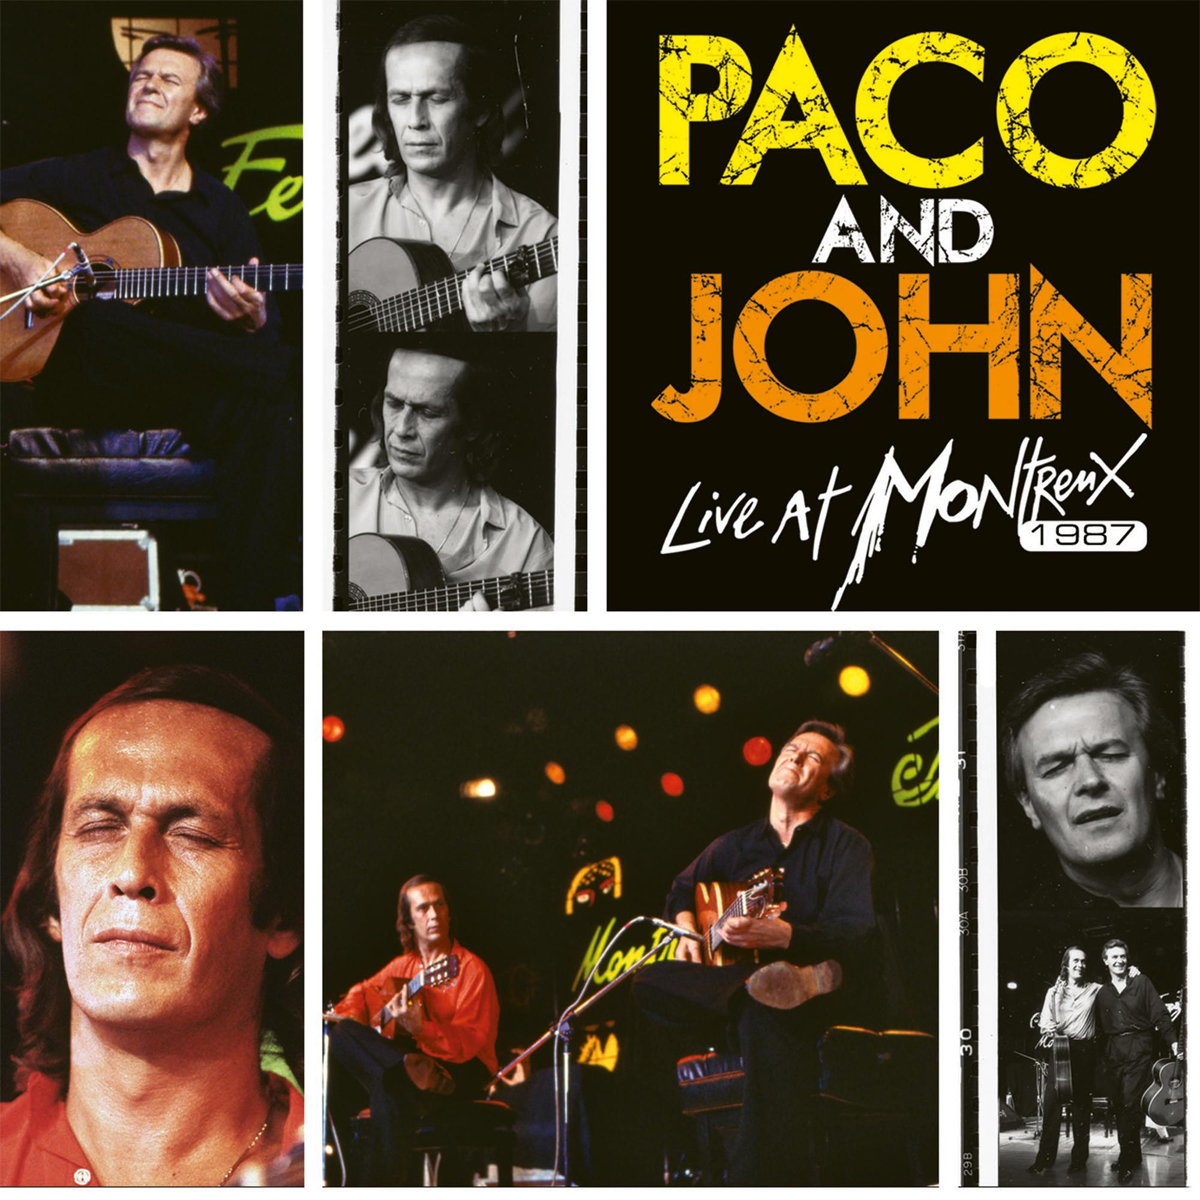 Paco de Lucia Paco and John Live at Montreux 1987 Hand-Numbered Limited Edition 180g 2LP (Yellow/Orange Vinyl)